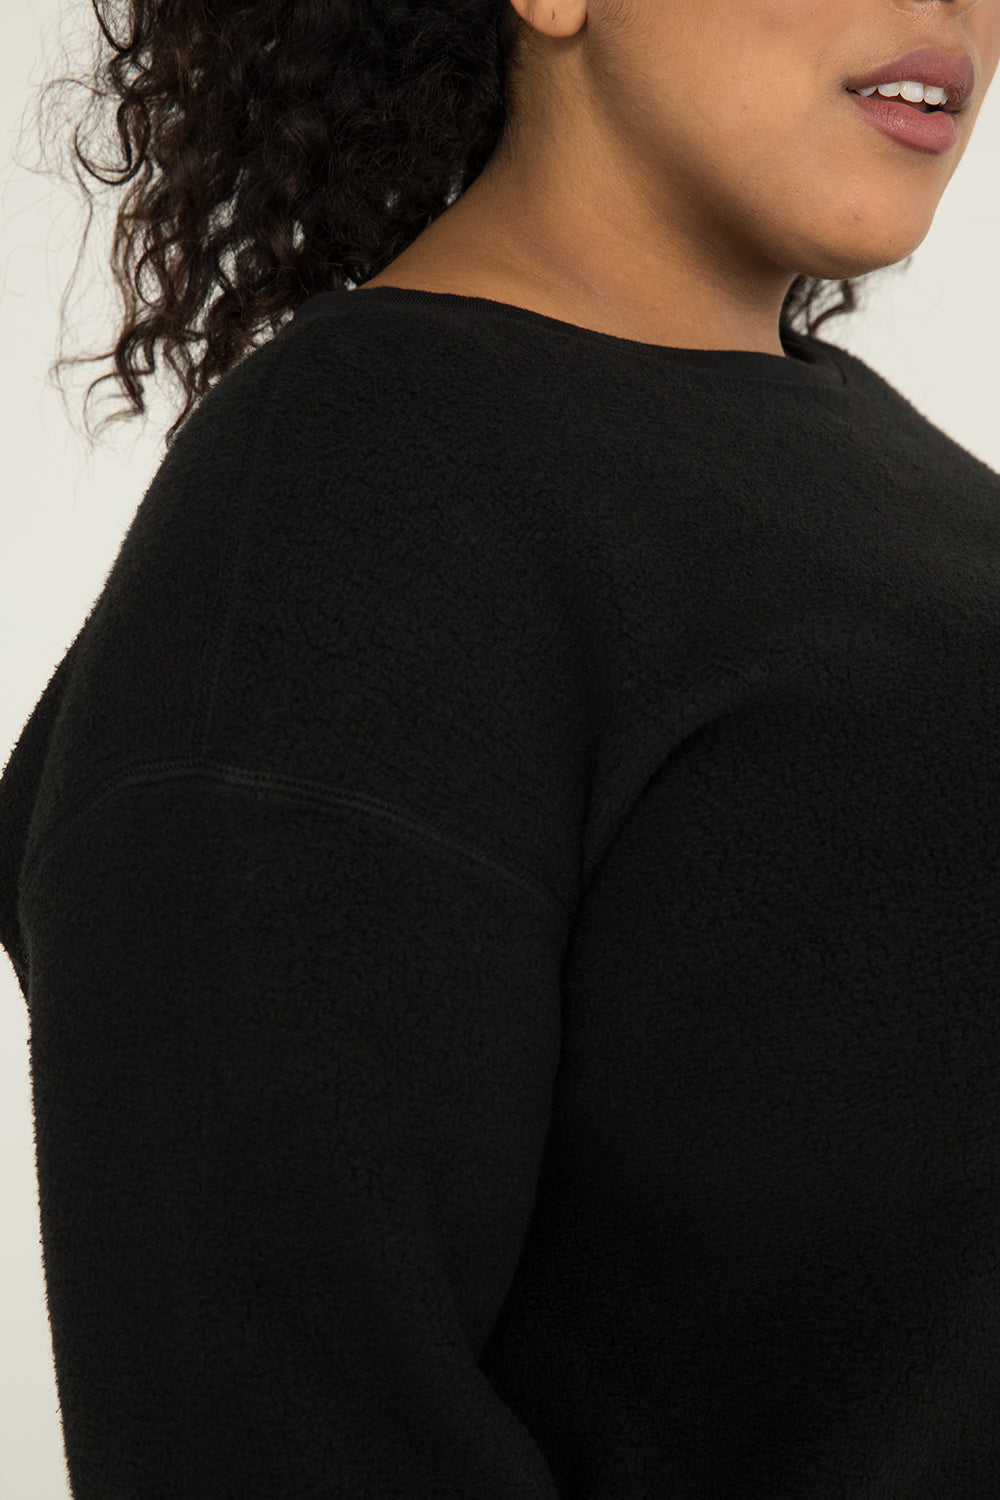 Billie Sweater in Textured Cotton Knit Black - Alex-2XL